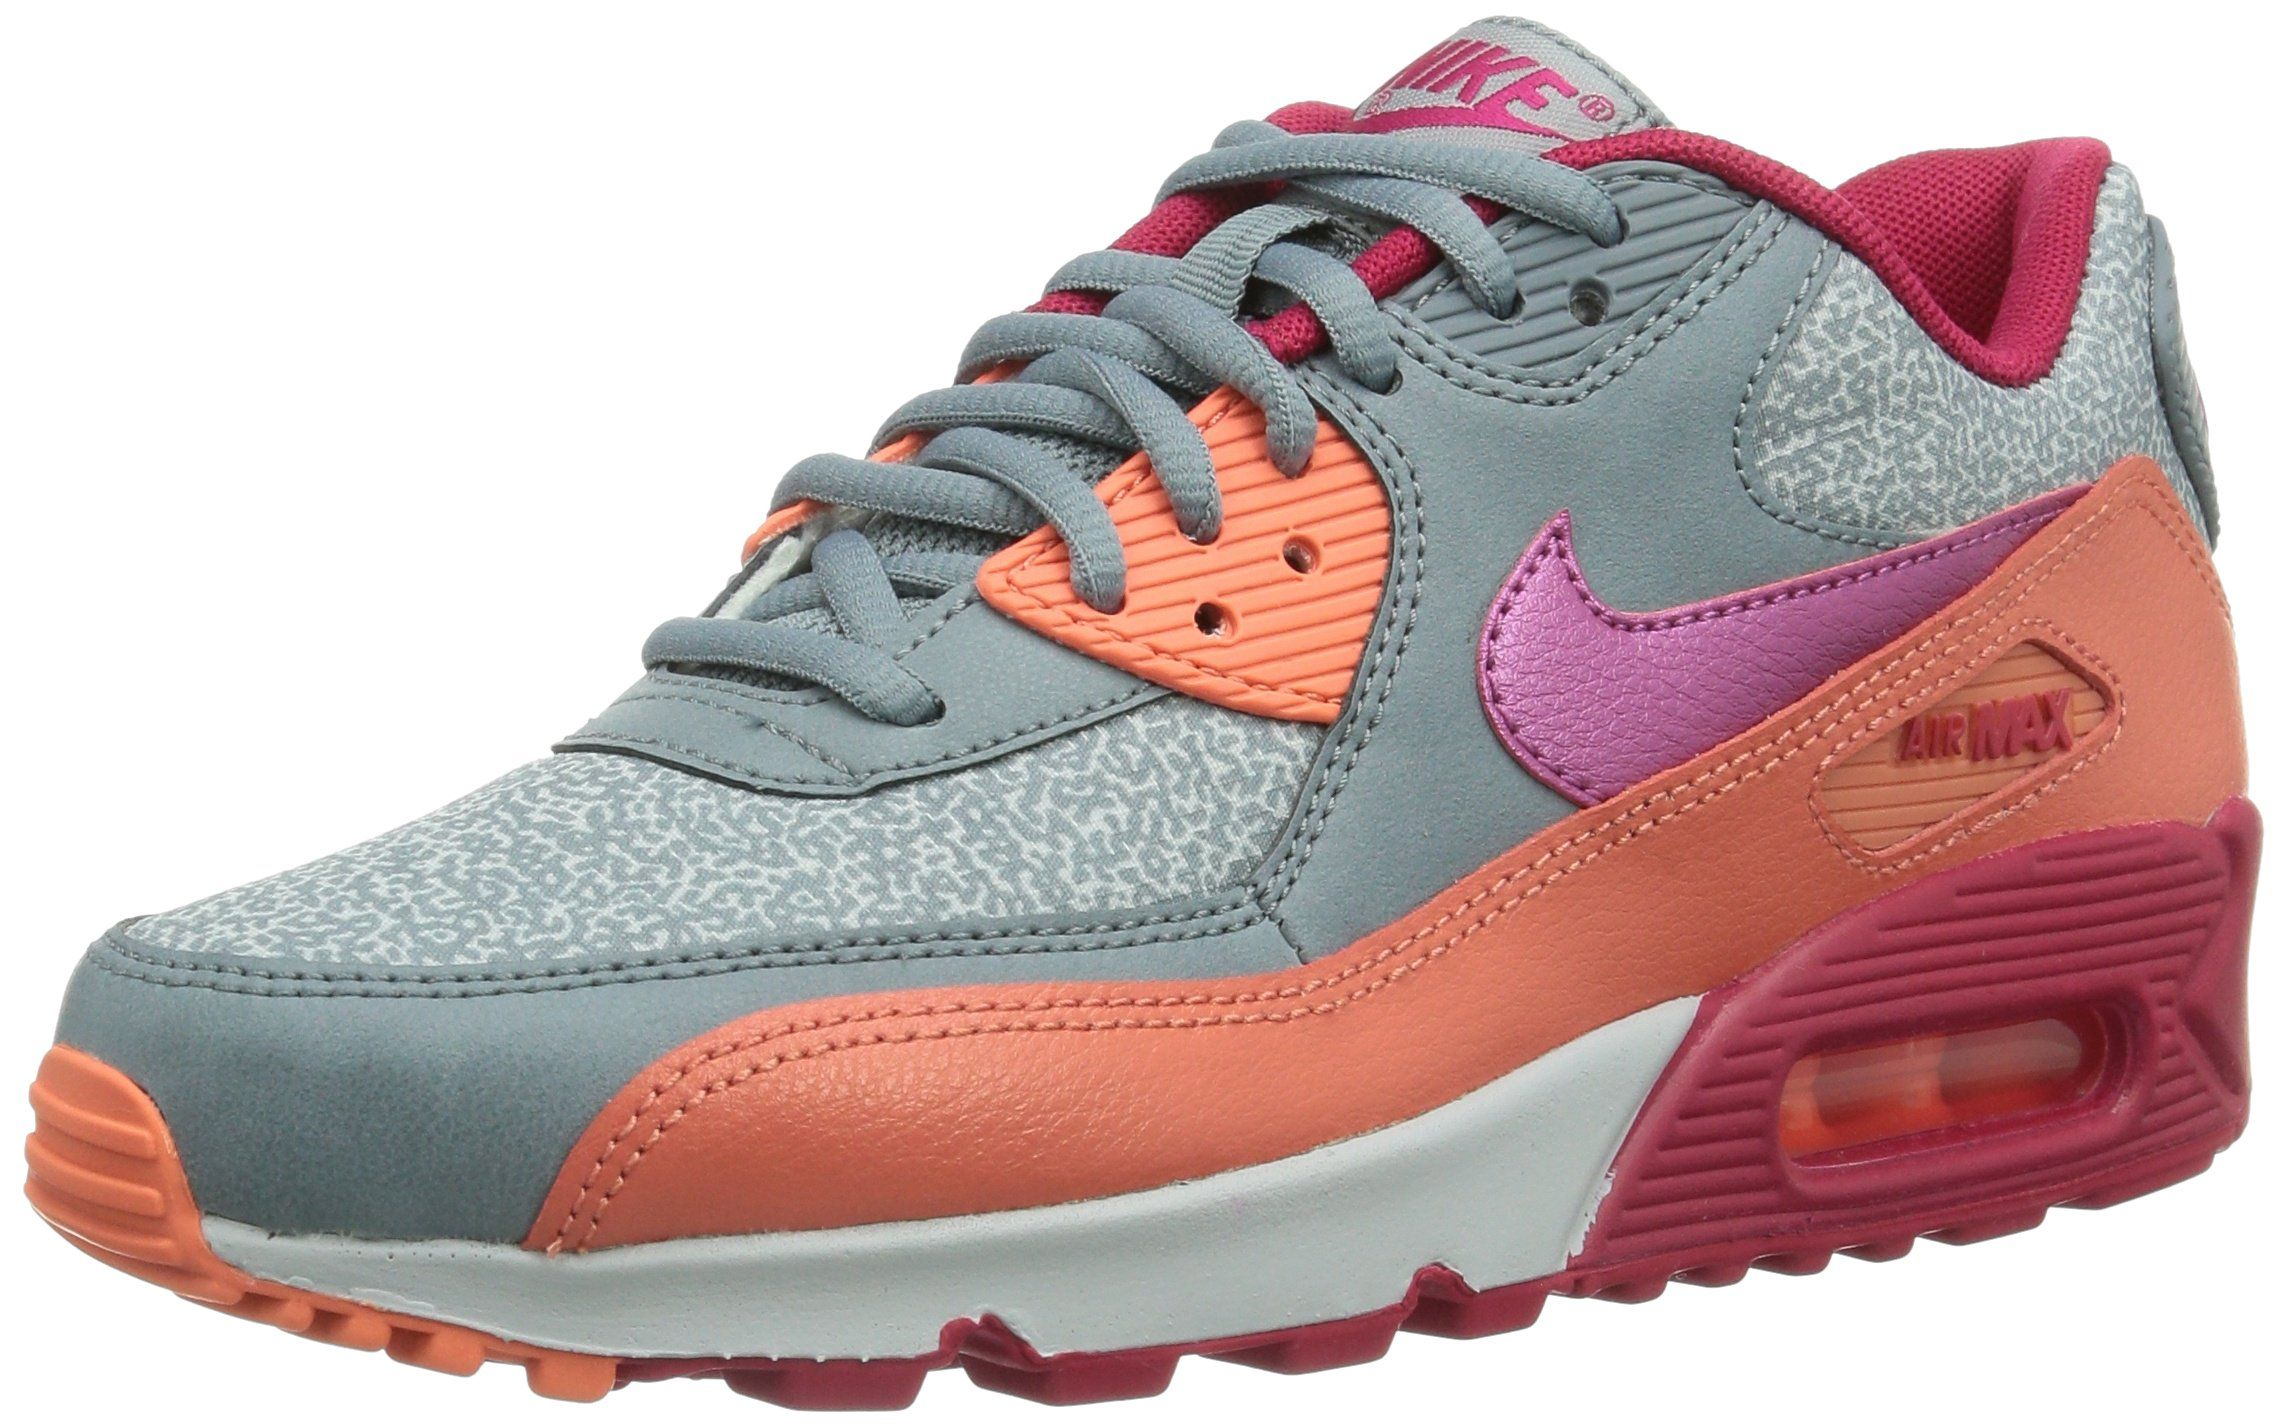 Nike Women's Air Max 90 Mgnt GryFchs FrcBrght MngPr